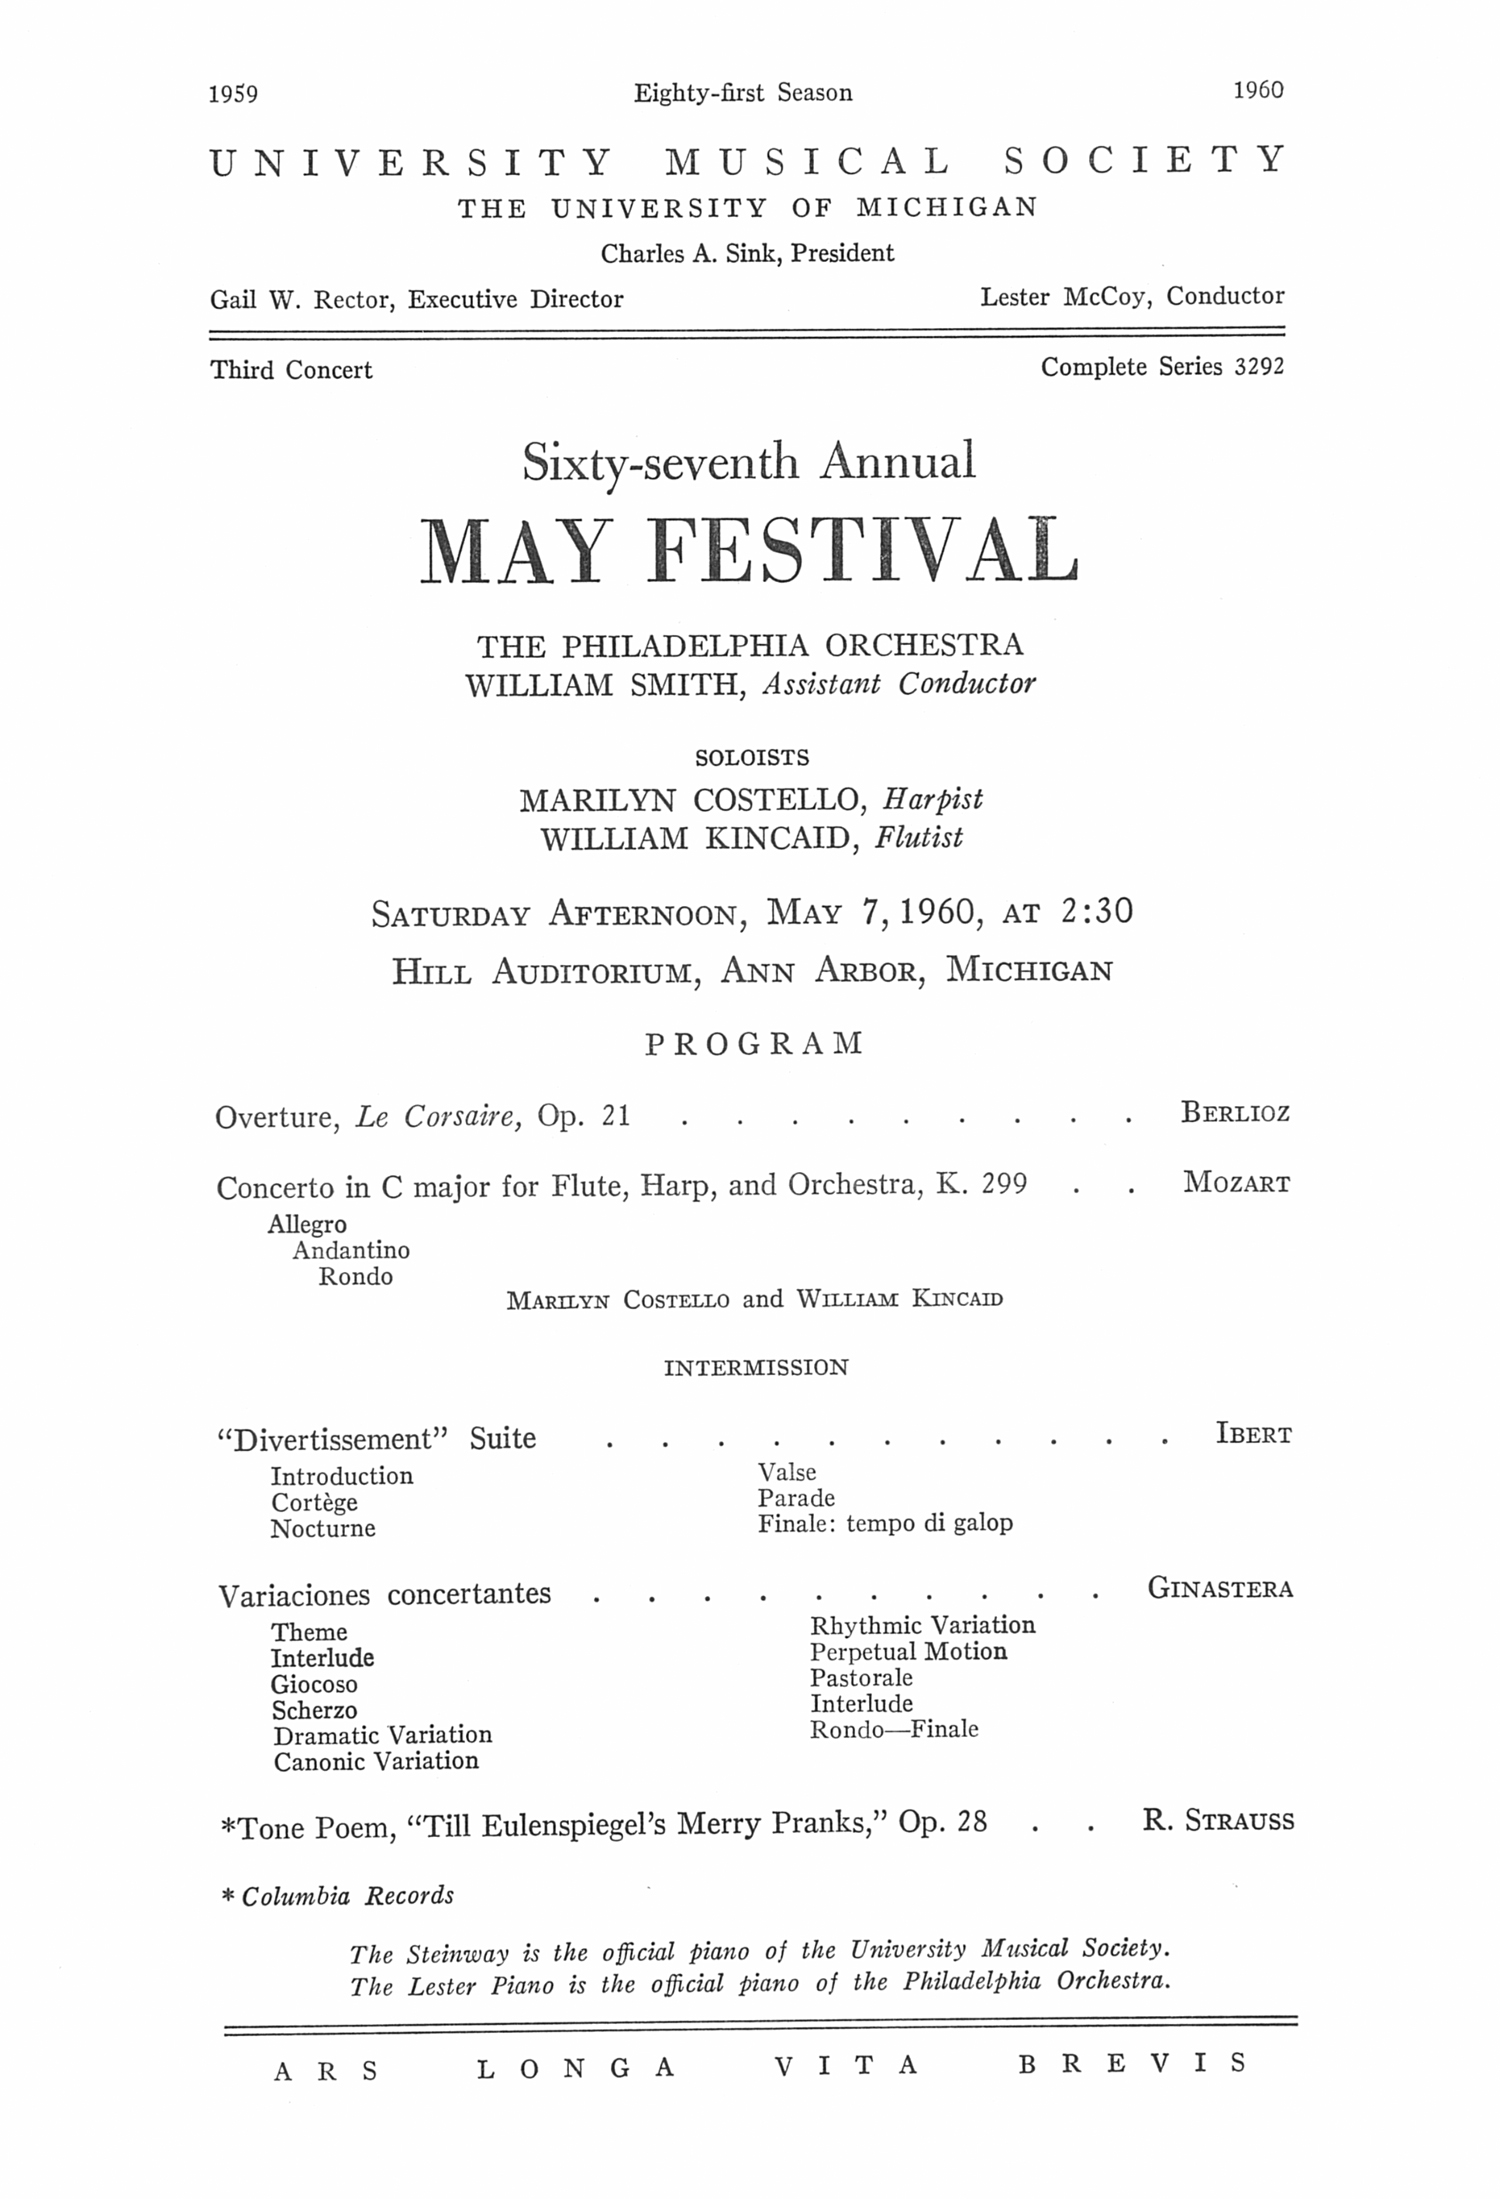 UMS Concert Program, May 7,1960: Sixty-seventh Annual May Festival -- The Philadelphia Orchestra image